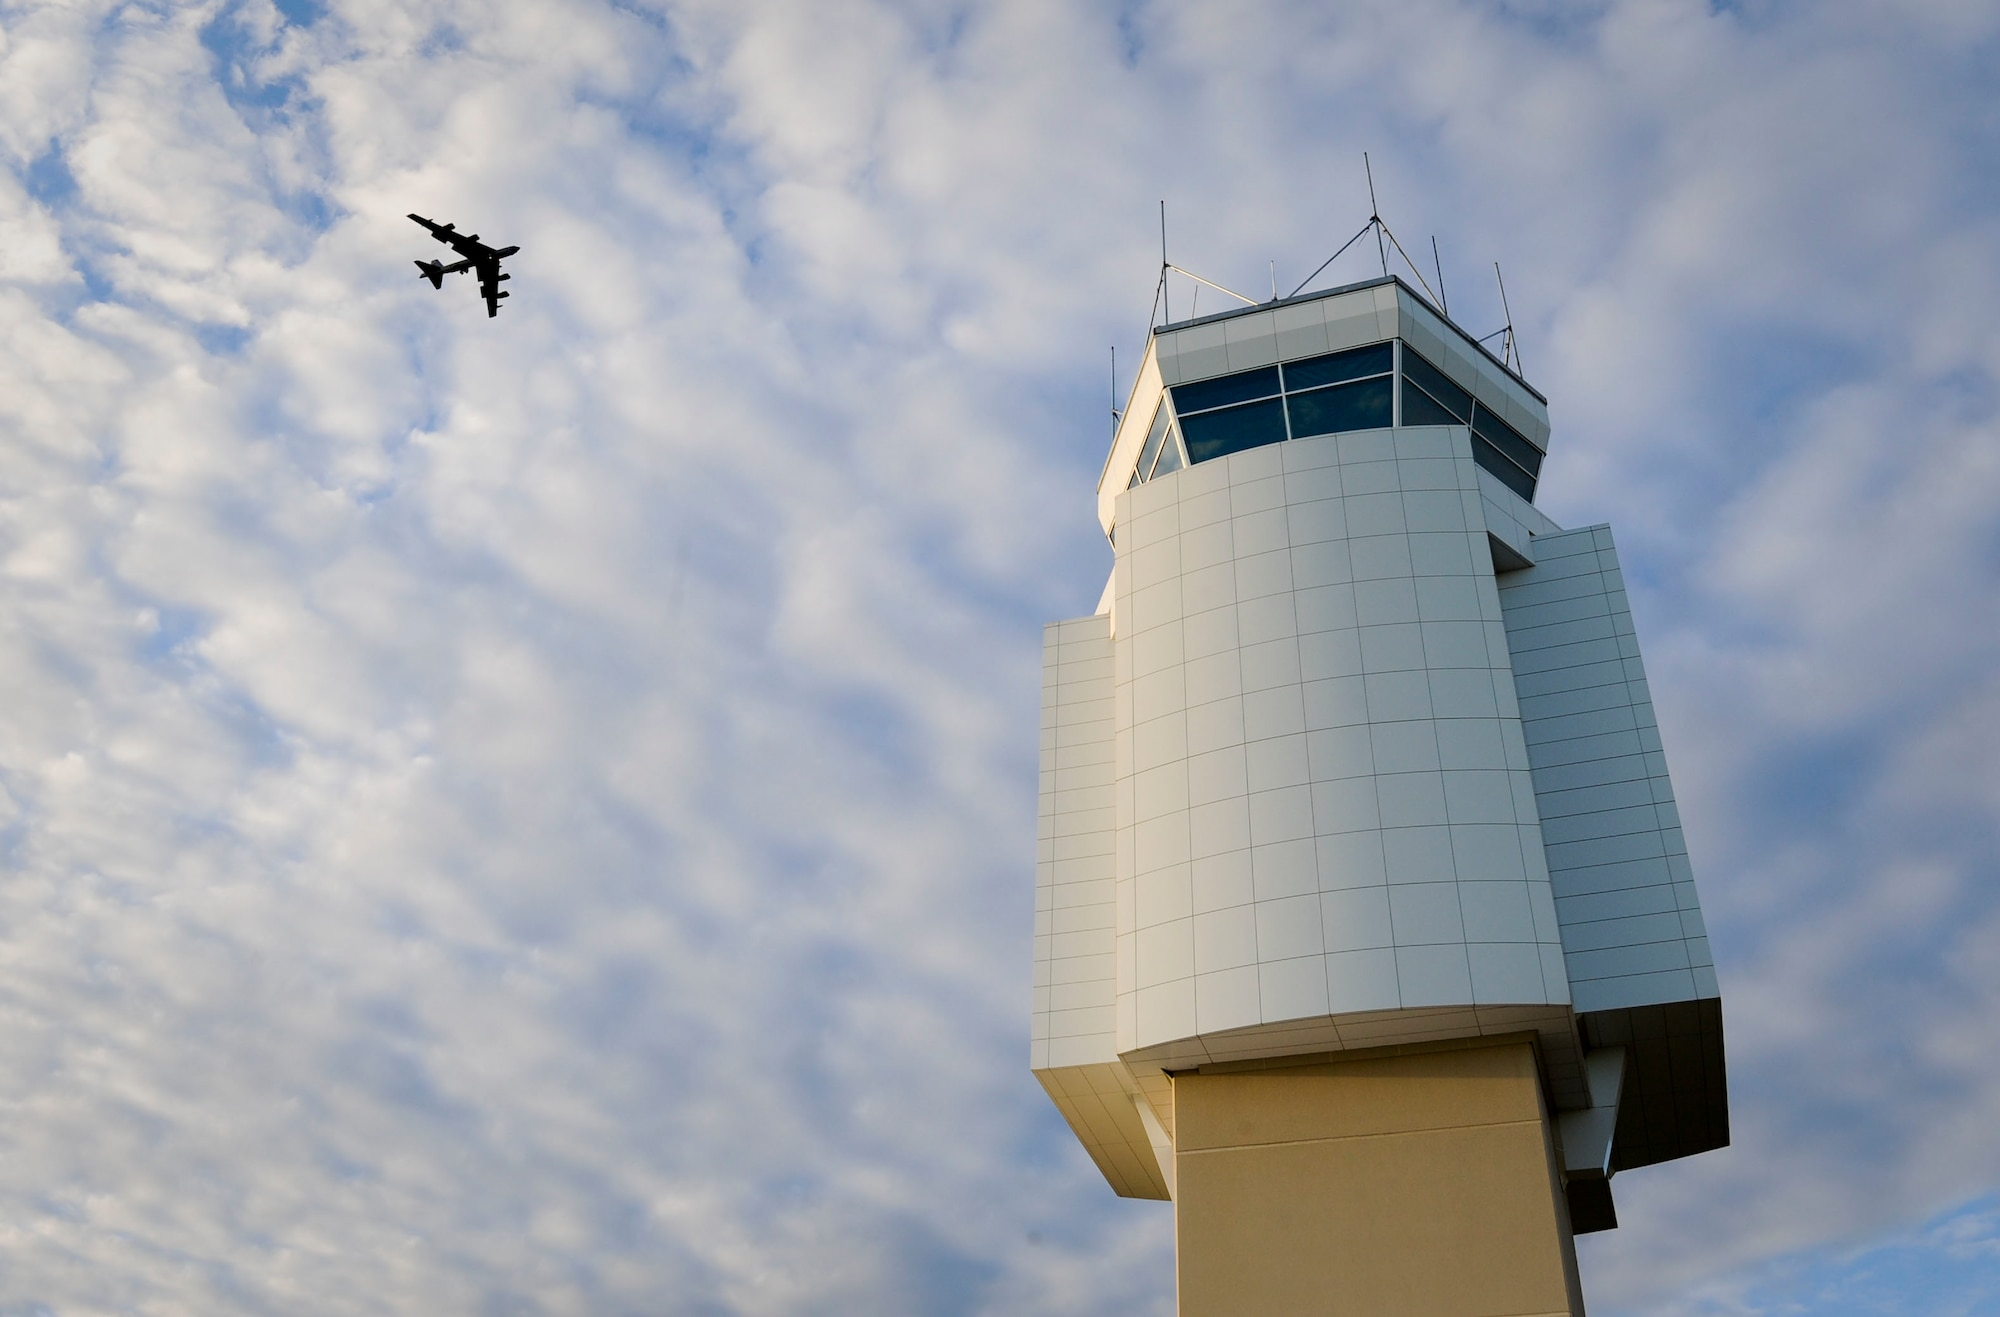 A B-52H Stratofortress flies above the Air Traffic Control Tower at Minot Air Force Base, N.D., June 20, 2017. During any in-flight emergency, it's an air traffic controller's responsibility to get the aircraft safely on the ground by clearing the airspace, communicating with the aircrew and ensuring emergency personnel are prepared to meet the aircraft when it lands. (U.S. Air Force photo by Senior Airman Sahara L. Fales)